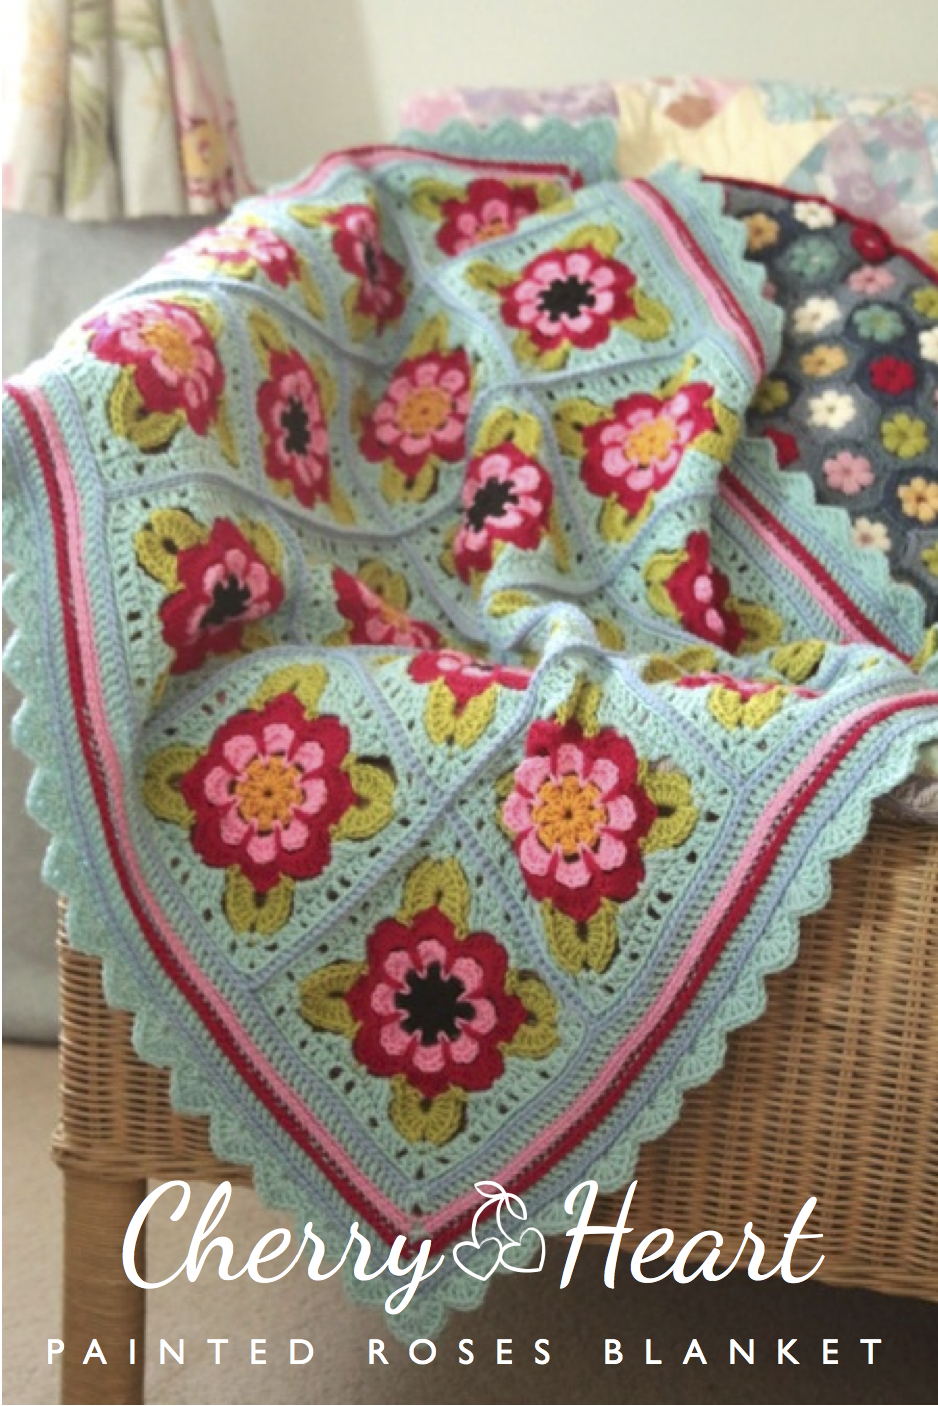 Cherry Heart: Painted Roses Blanket Inspired by the painted flowers ...